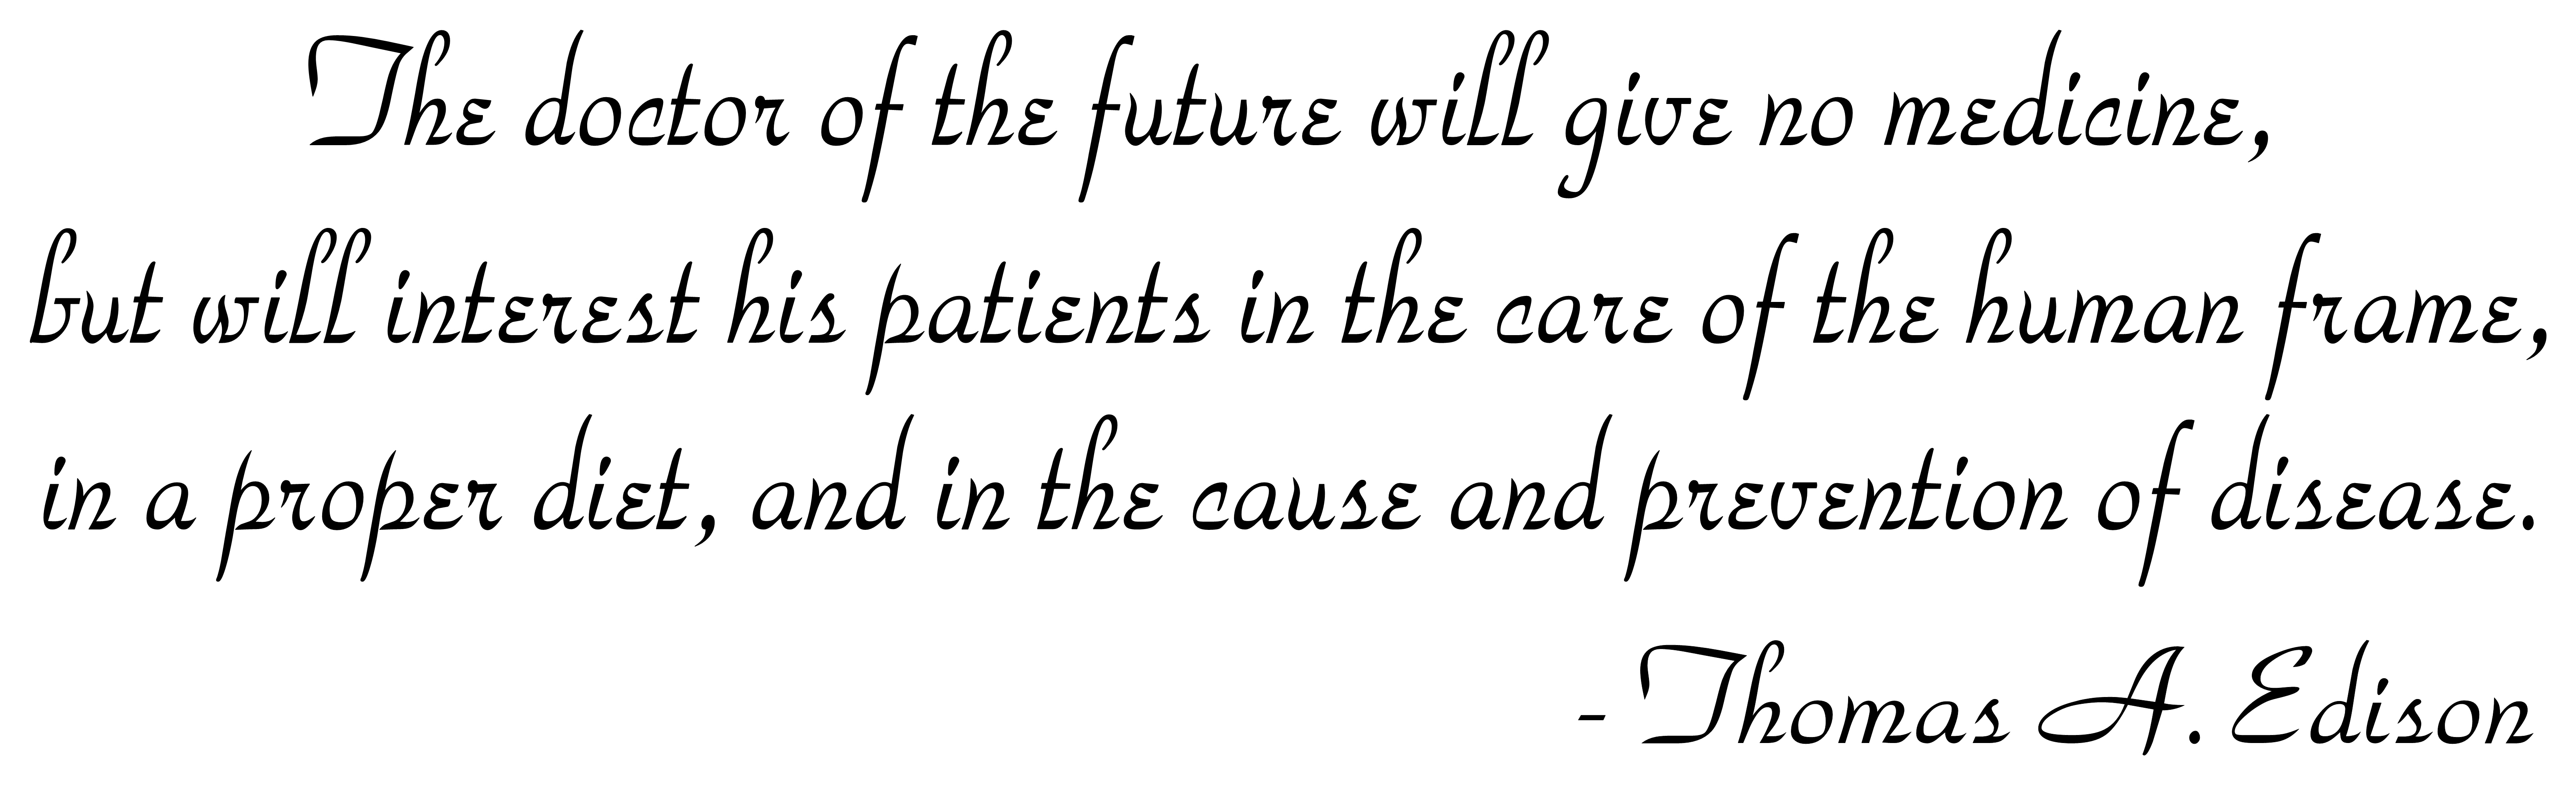 Thomas Edison The Doctor Of The Future Quotevinyl Wall Expressions